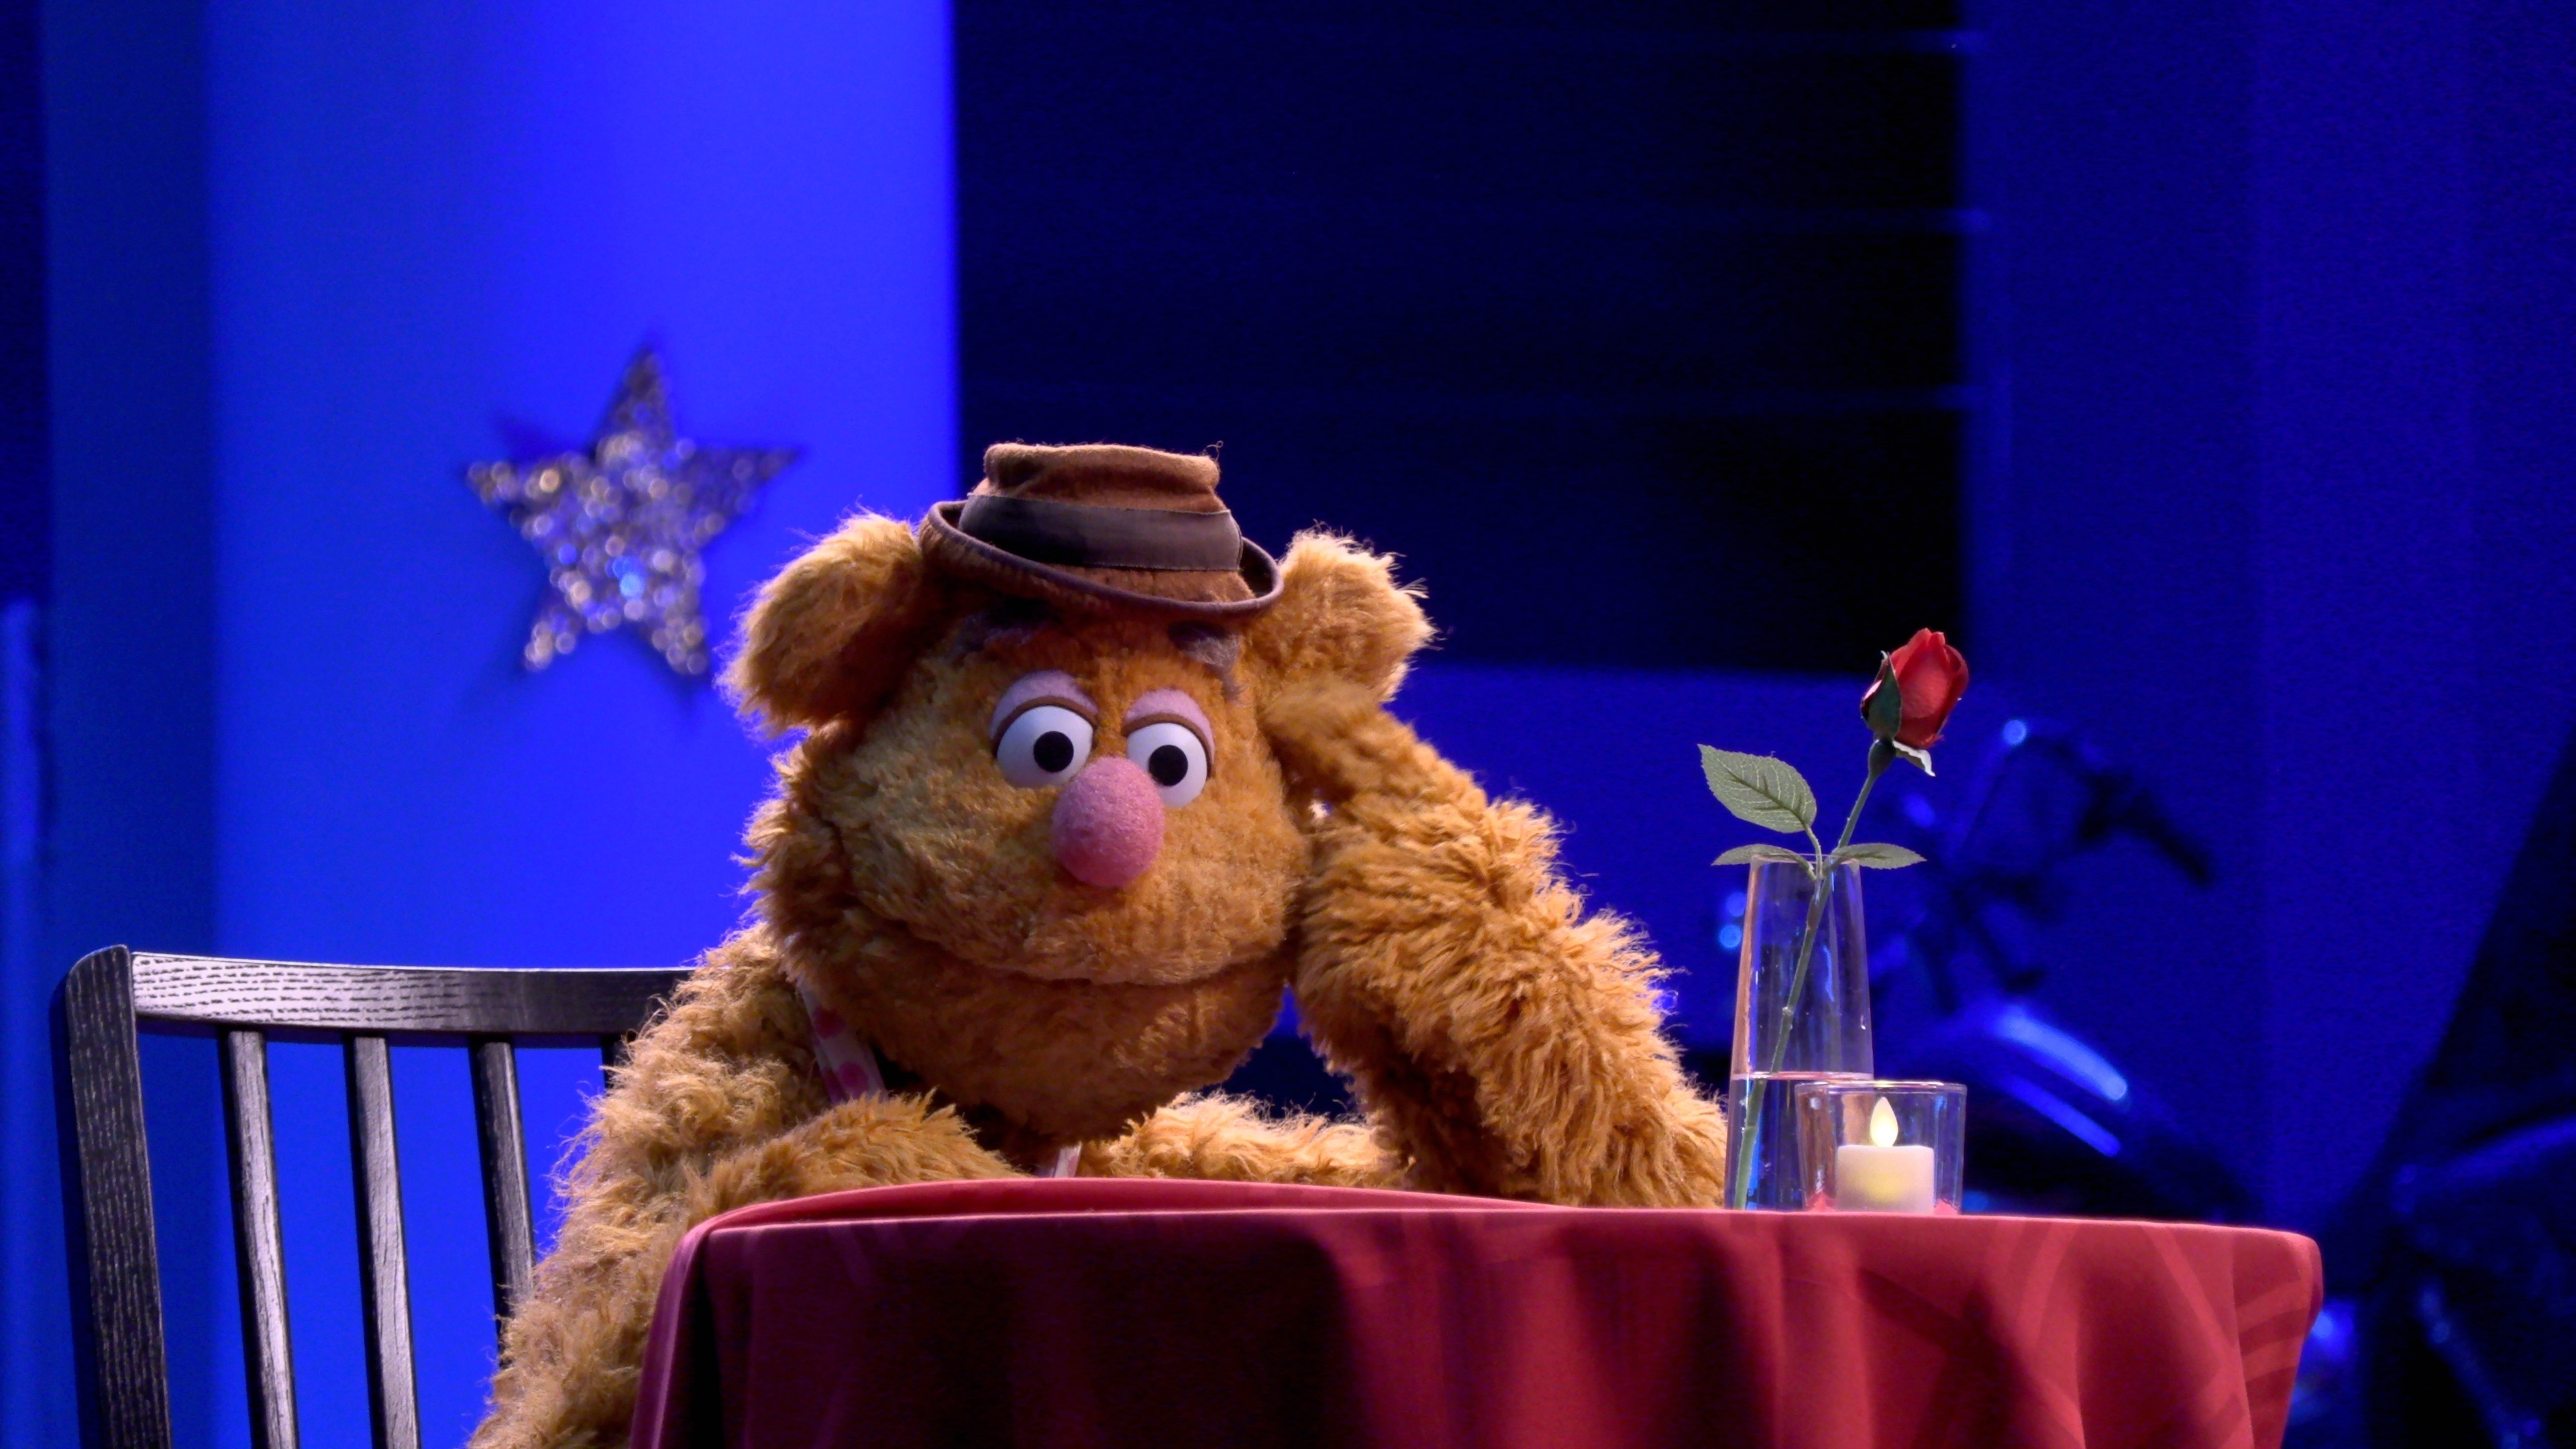 From the new Muppets Disney Plus show, Fozzie sits at table with a rose in a vase on it waiting for someone it's very sad!